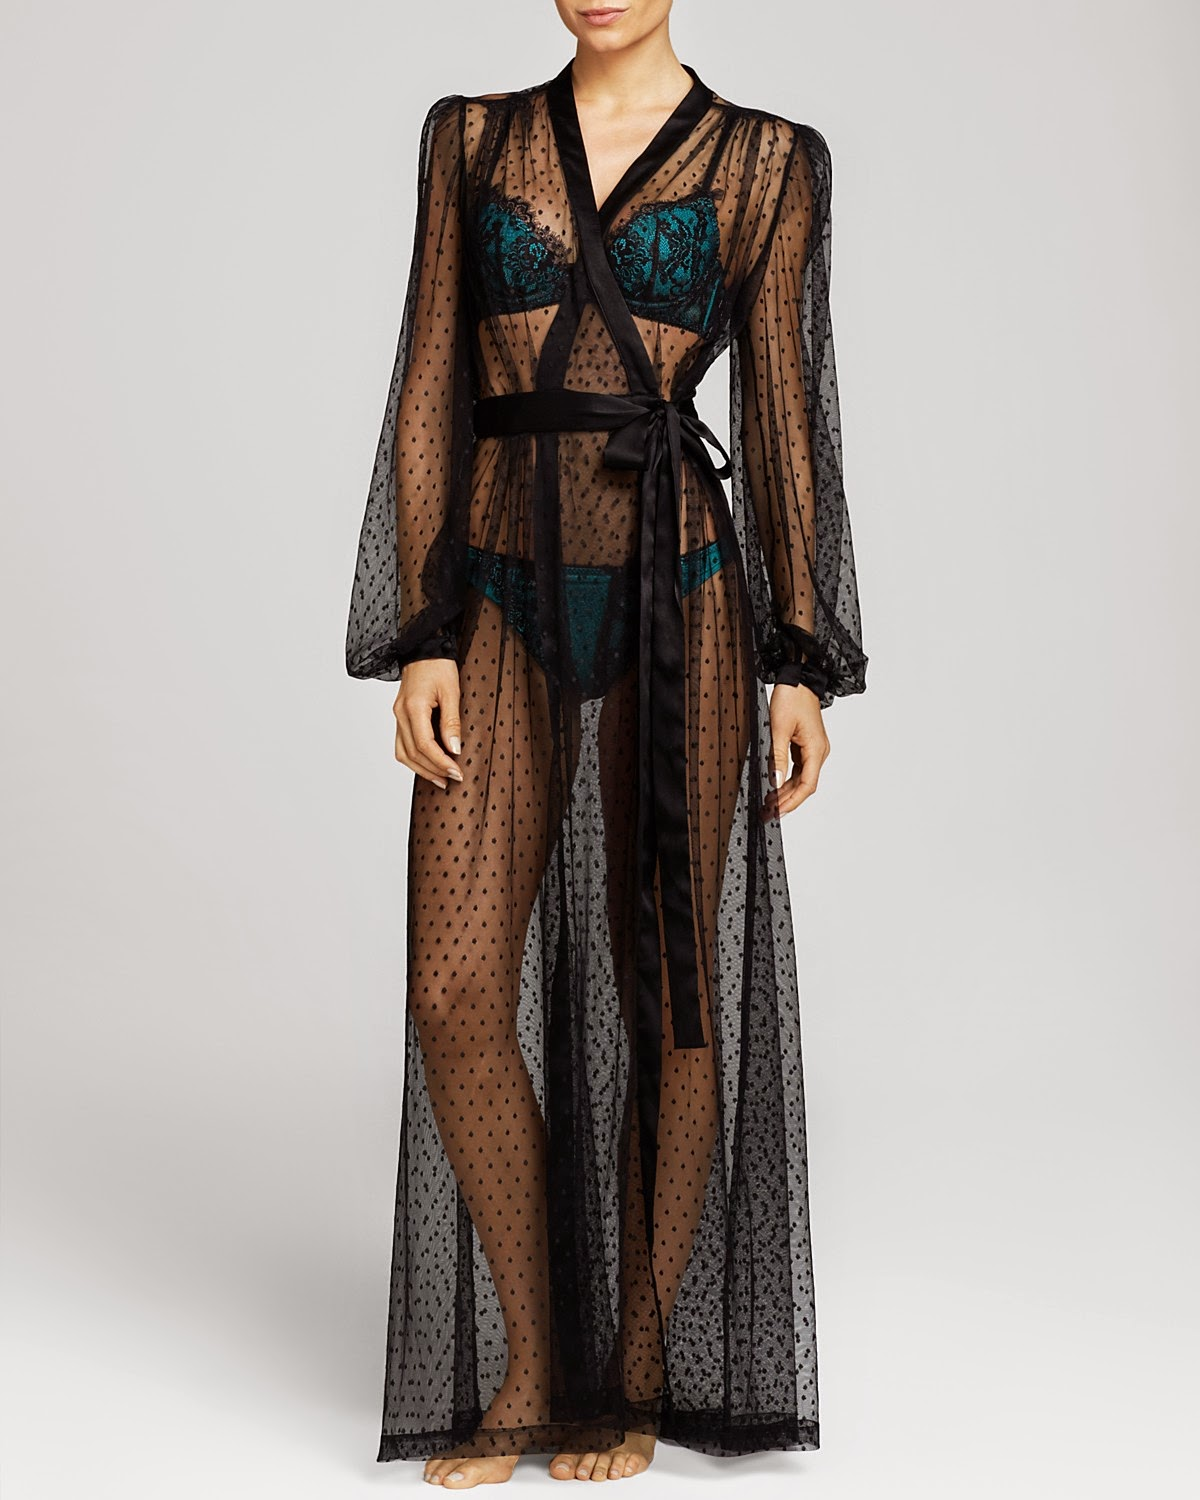 http://www.asos.com/dita-von-teese/dita-von-teese-lamarr-robe/prod/pgeproduct.aspx?iid=4719706&clr=Blackspotmesh&SearchQuery=dita&pgesize=36&pge=1&totalstyles=67&gridsize=3&gridrow=6&gridcolumn=3